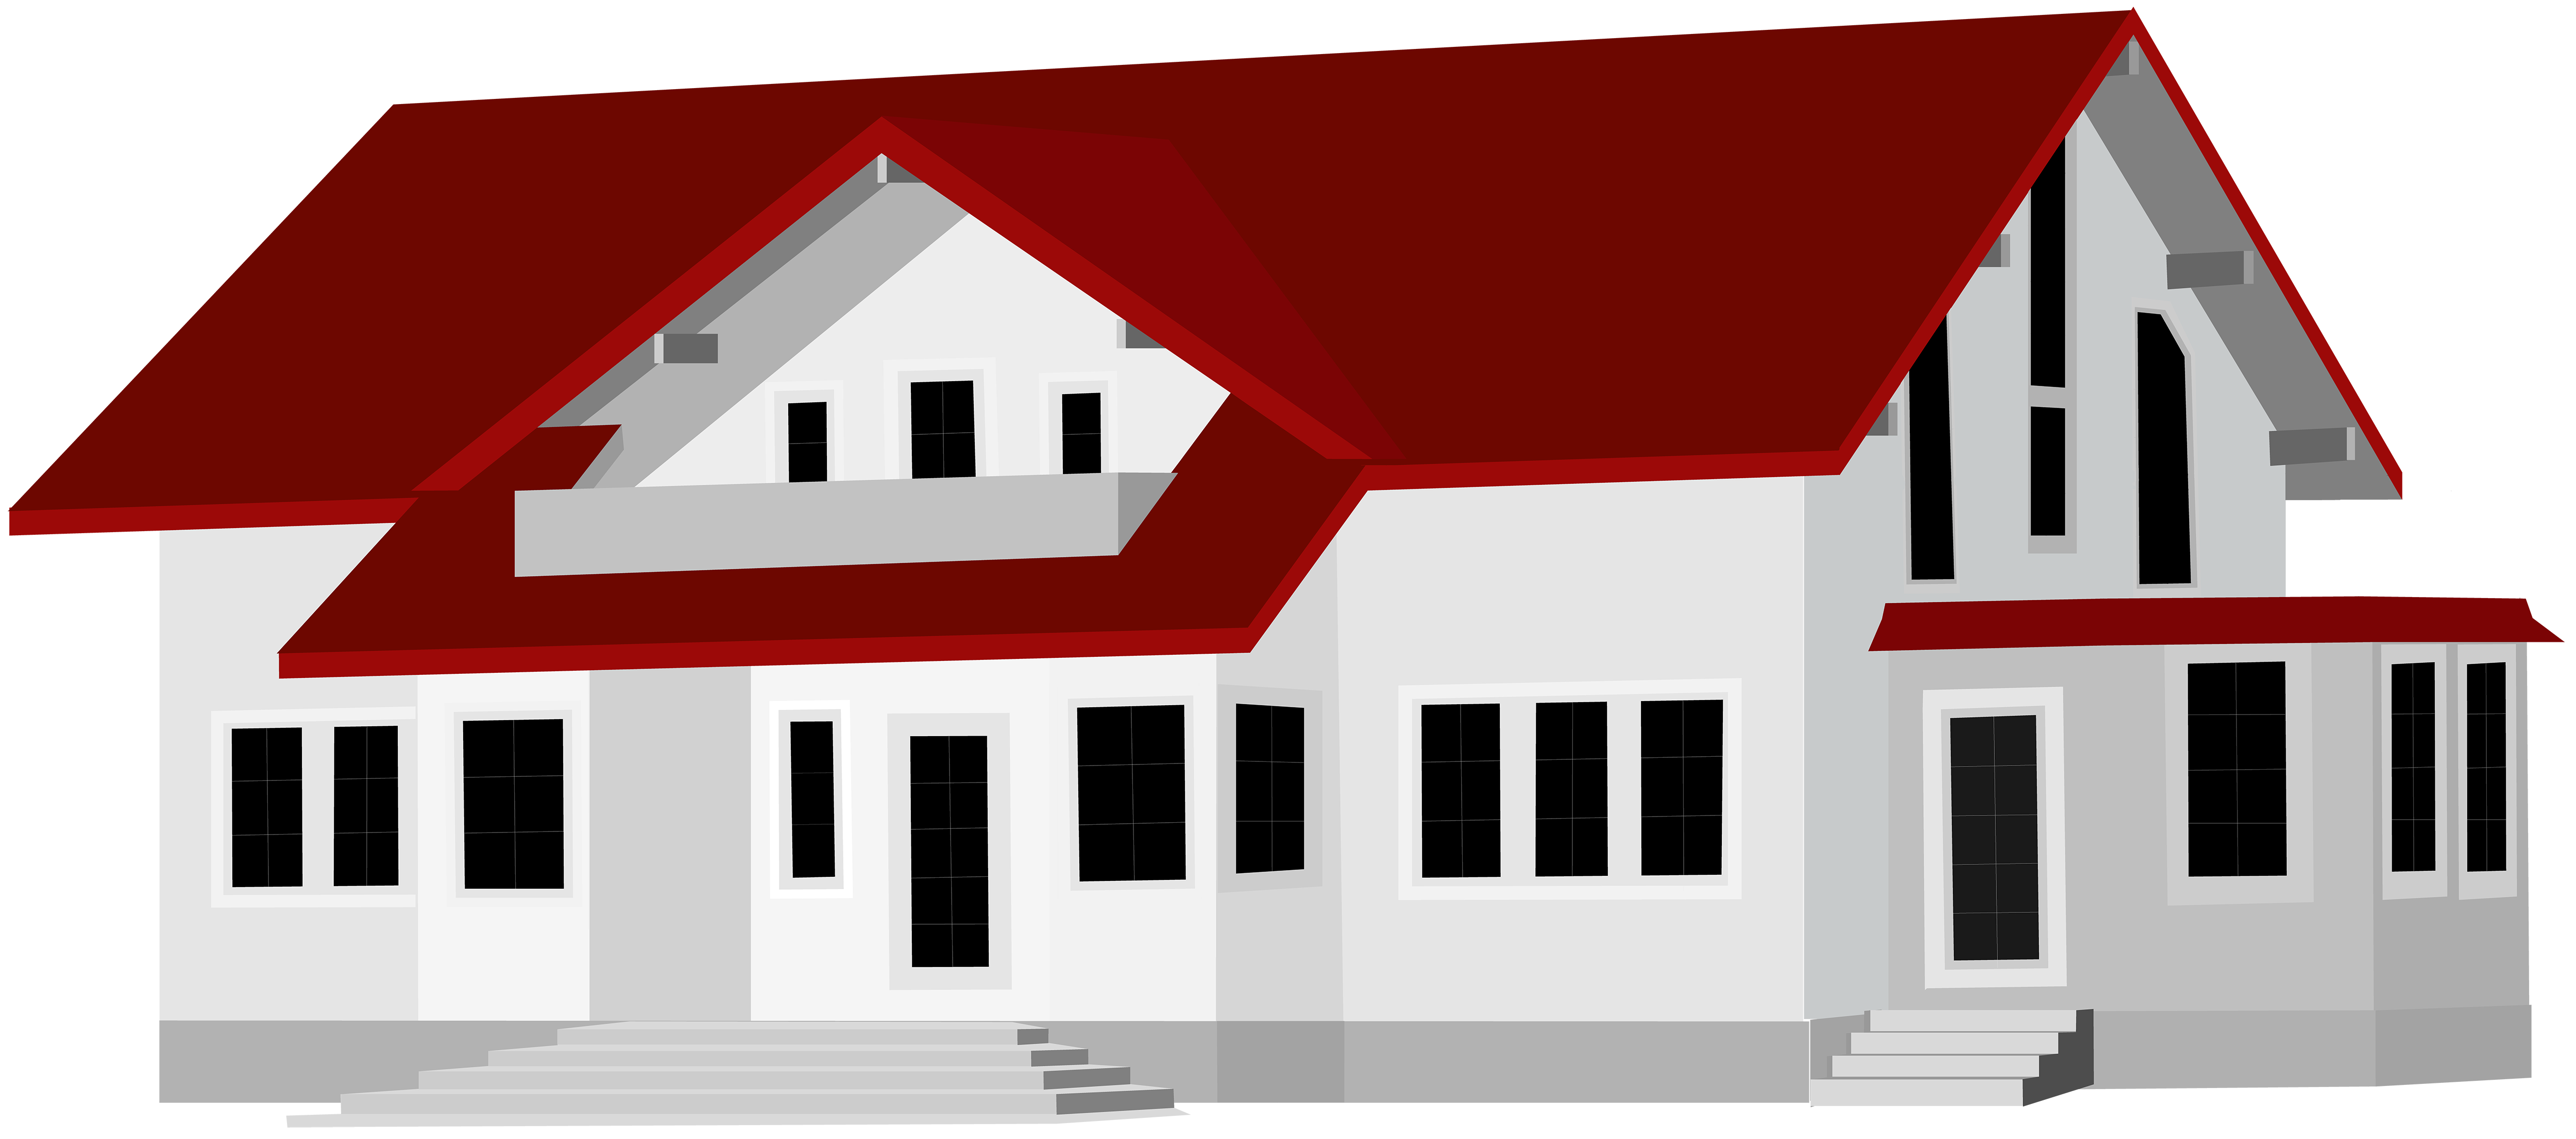 house clipart at getdrawings com free for personal use house rh getdrawings com clipart housekeeping clipart house painter